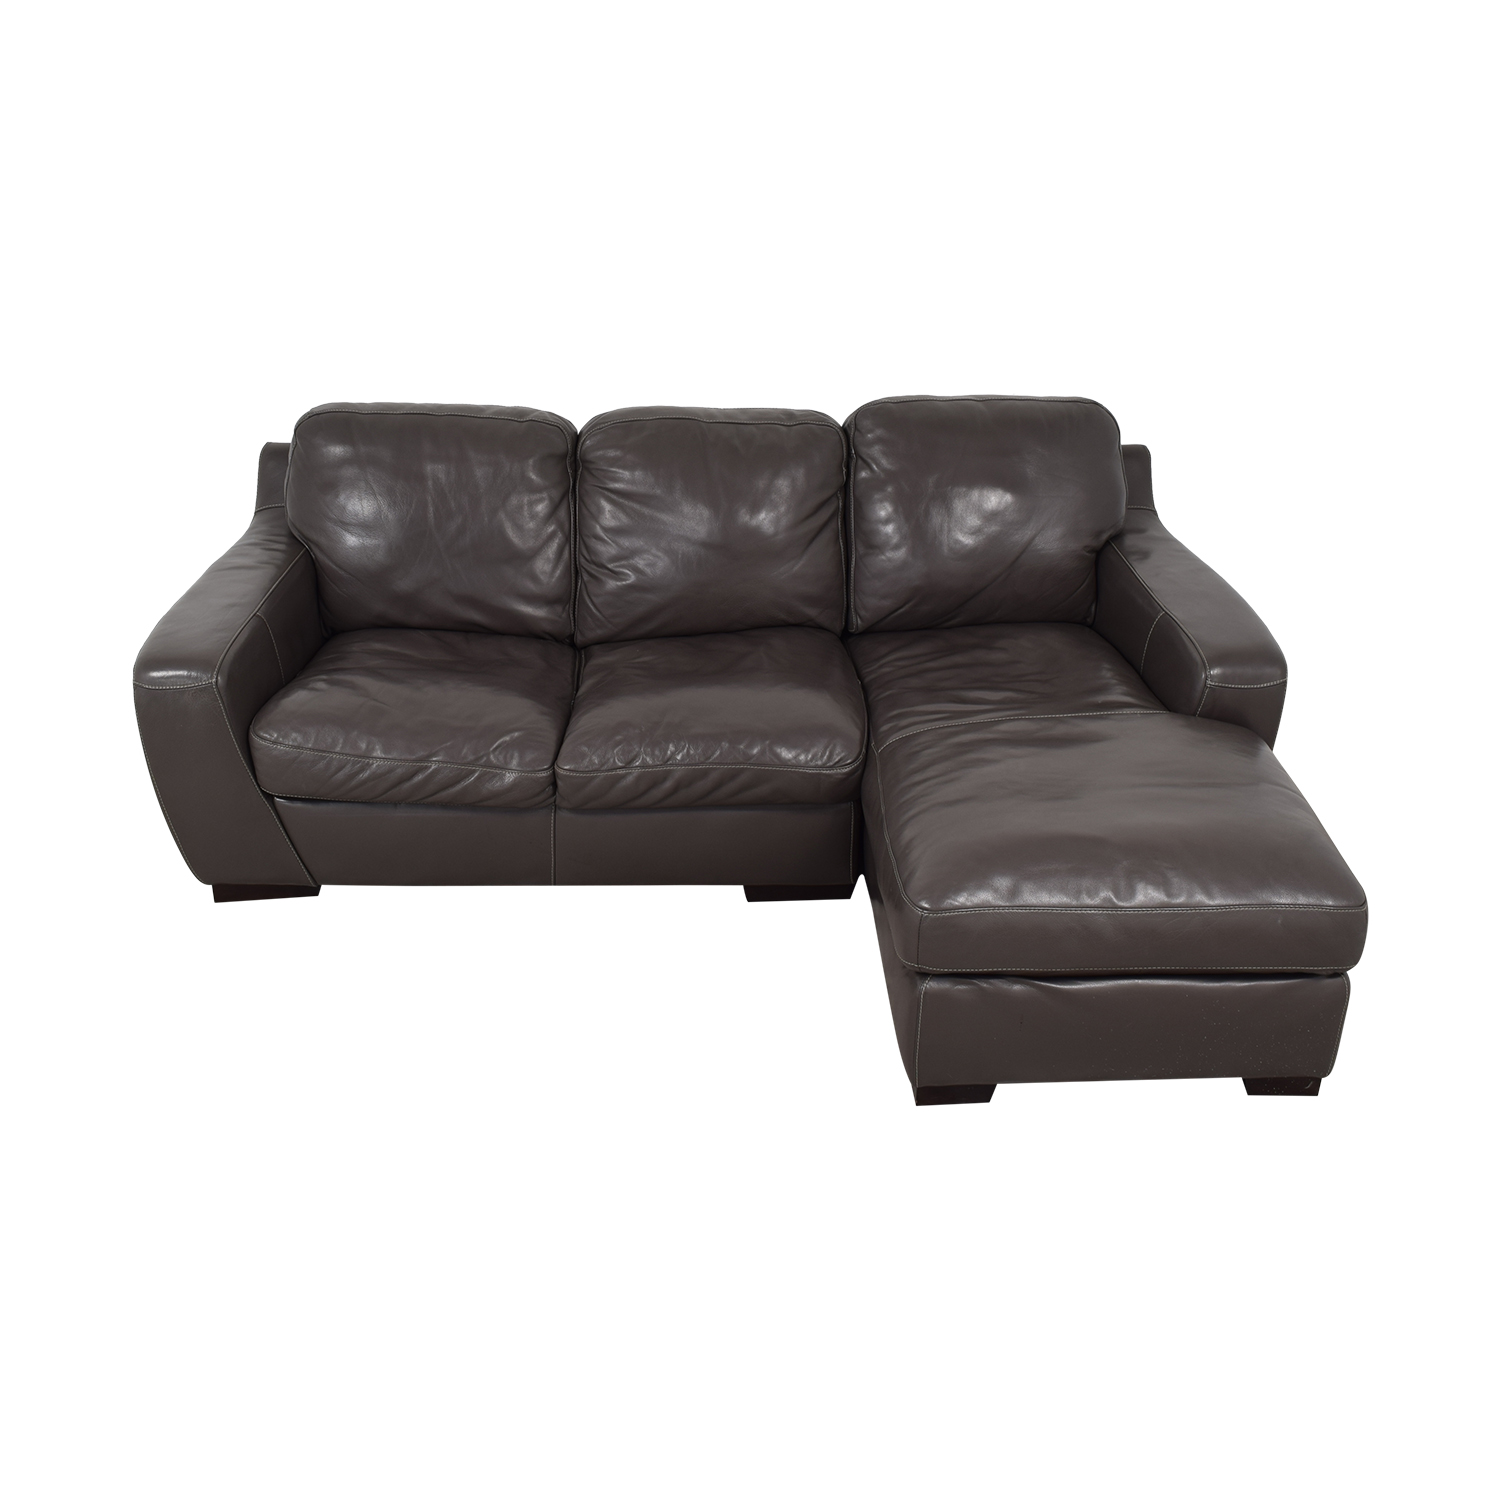 Raymour & Flanigan Raymour & Flanigan Stone Chaise Sectional coupon